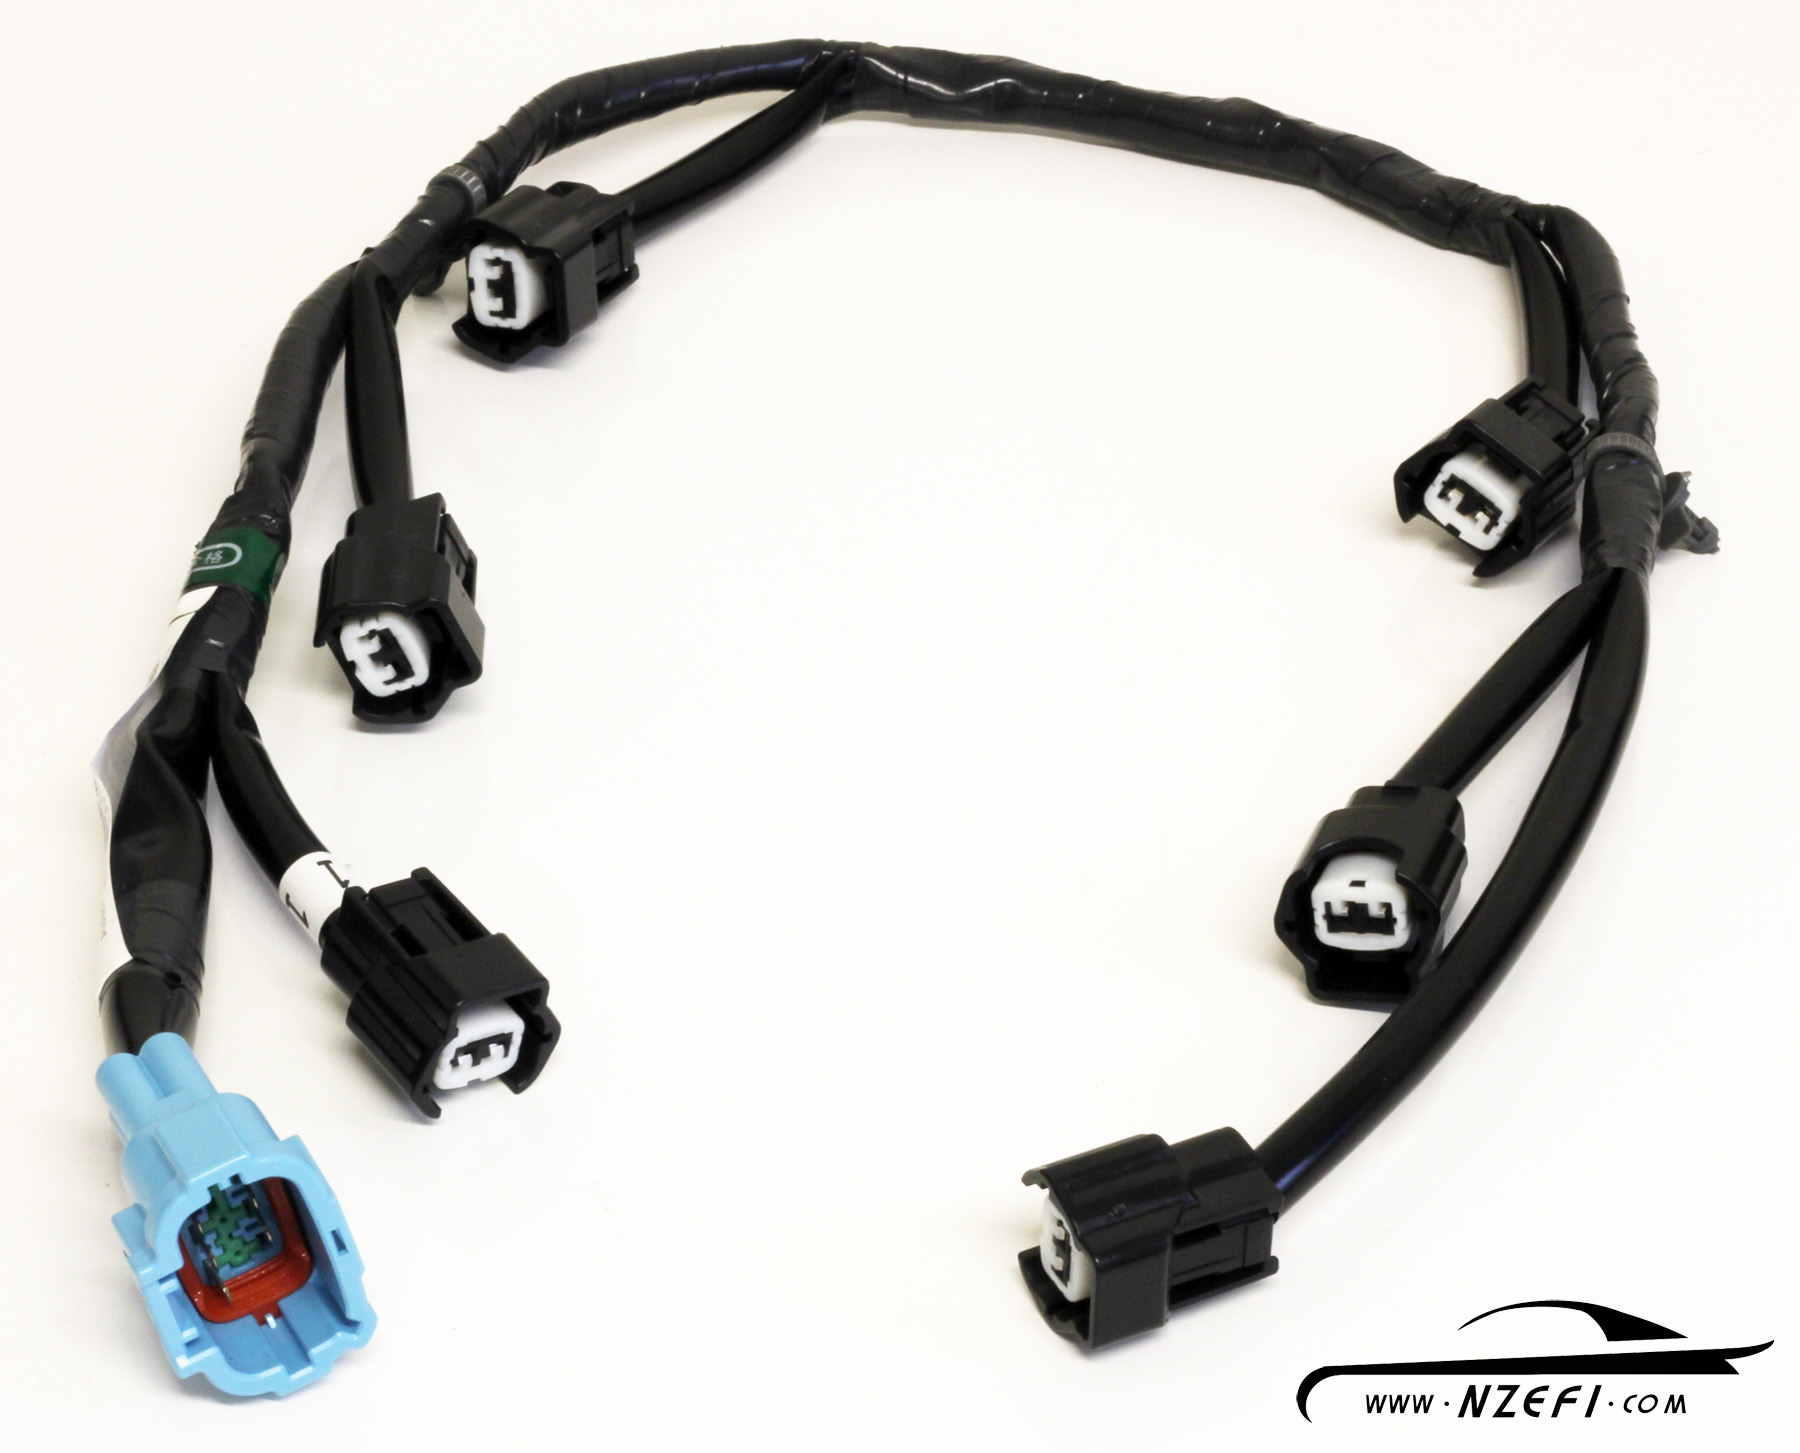 Nissan R33 S2 RB25DET Fuel Injector Wiring Sub harness r33 series 2 rb25det nissan skyline injector harness nzefi